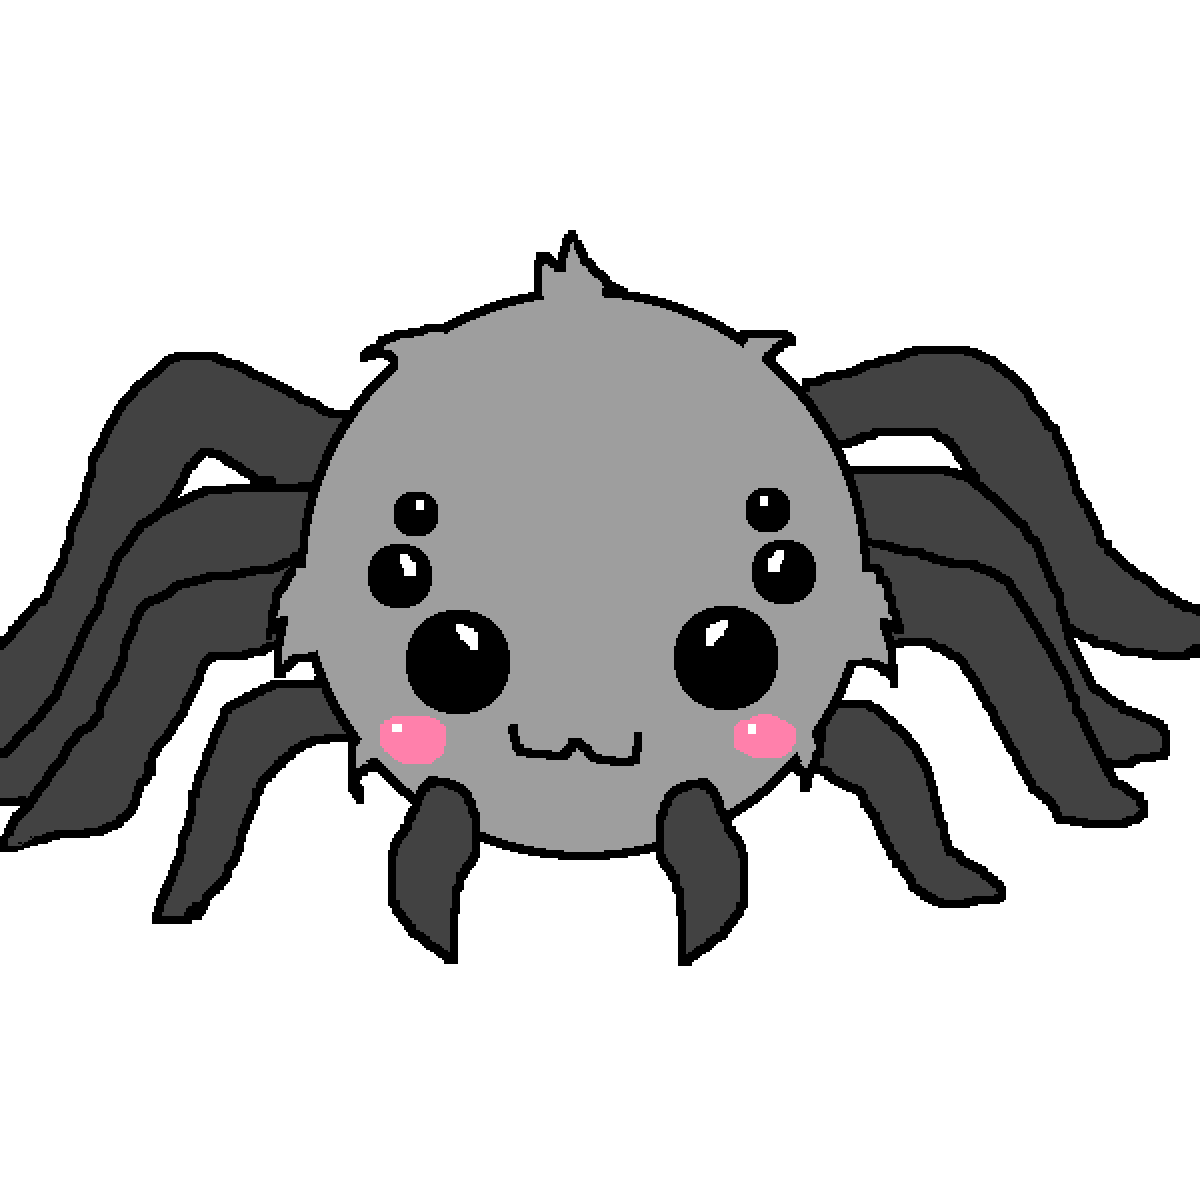 Spiders clipart white eye. Pixilart chibi spider by